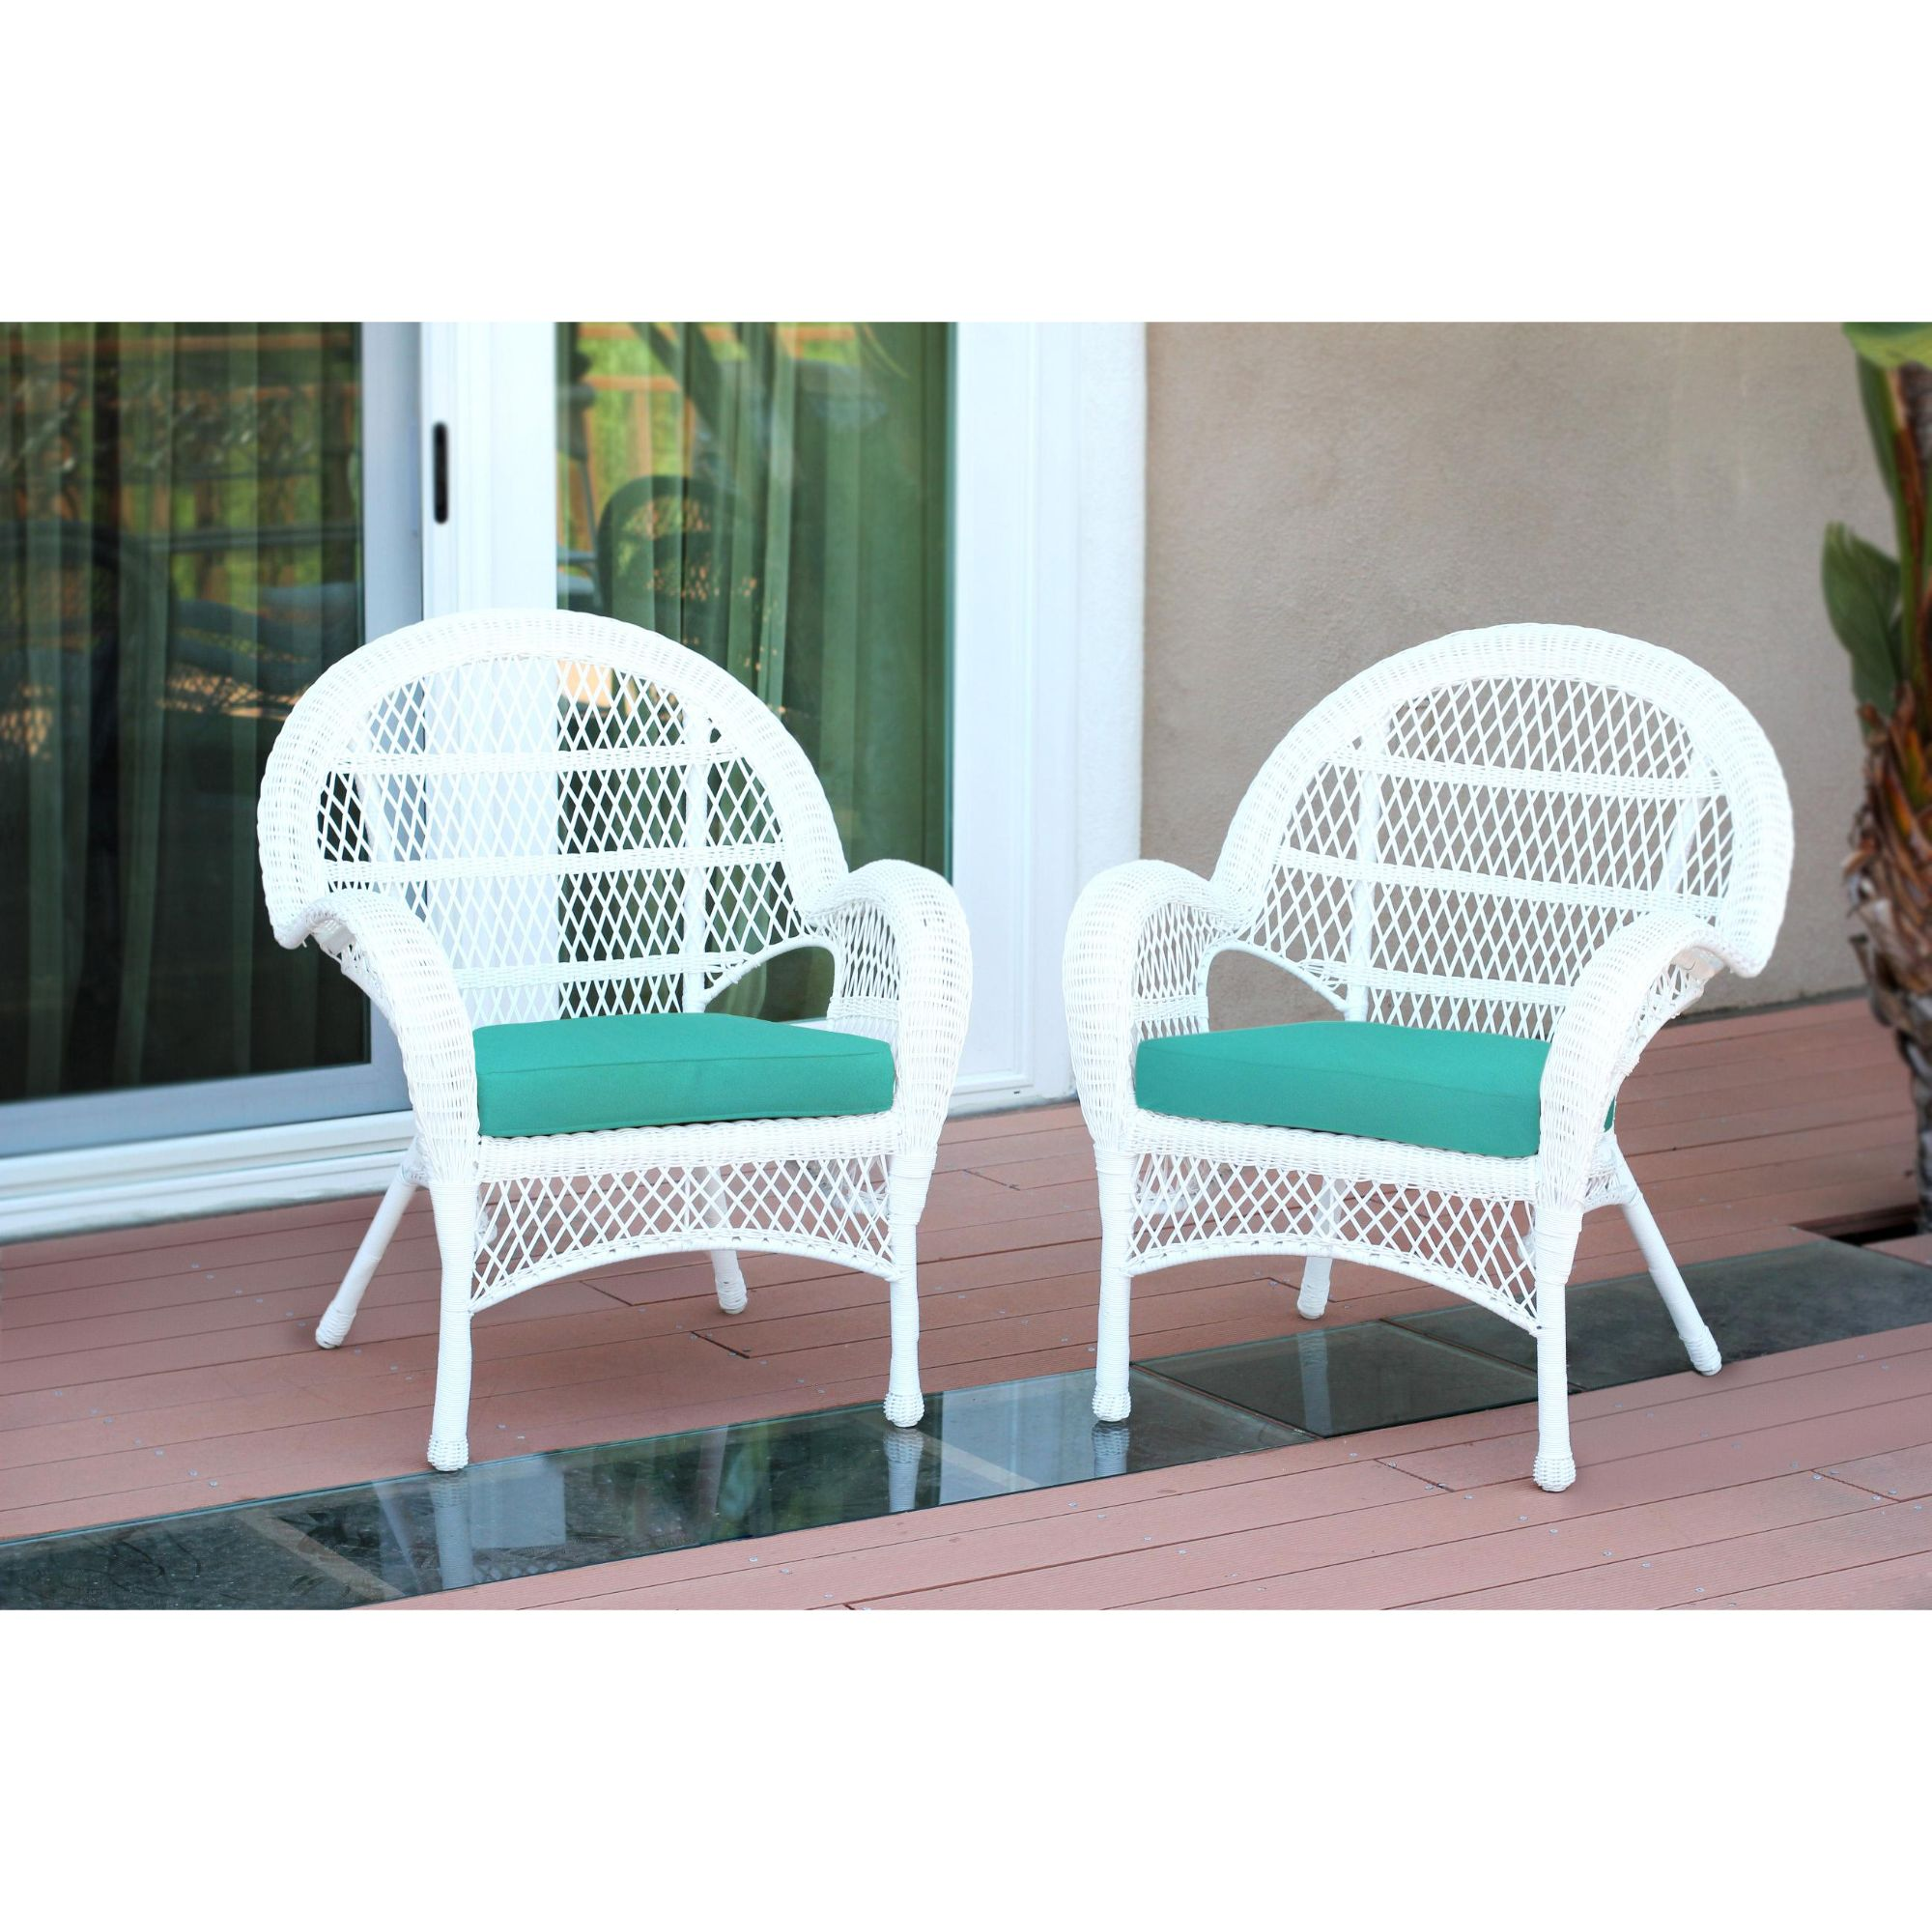 set of 2 white wicker outdoor furniture patio chairs turquoise cushions walmart com